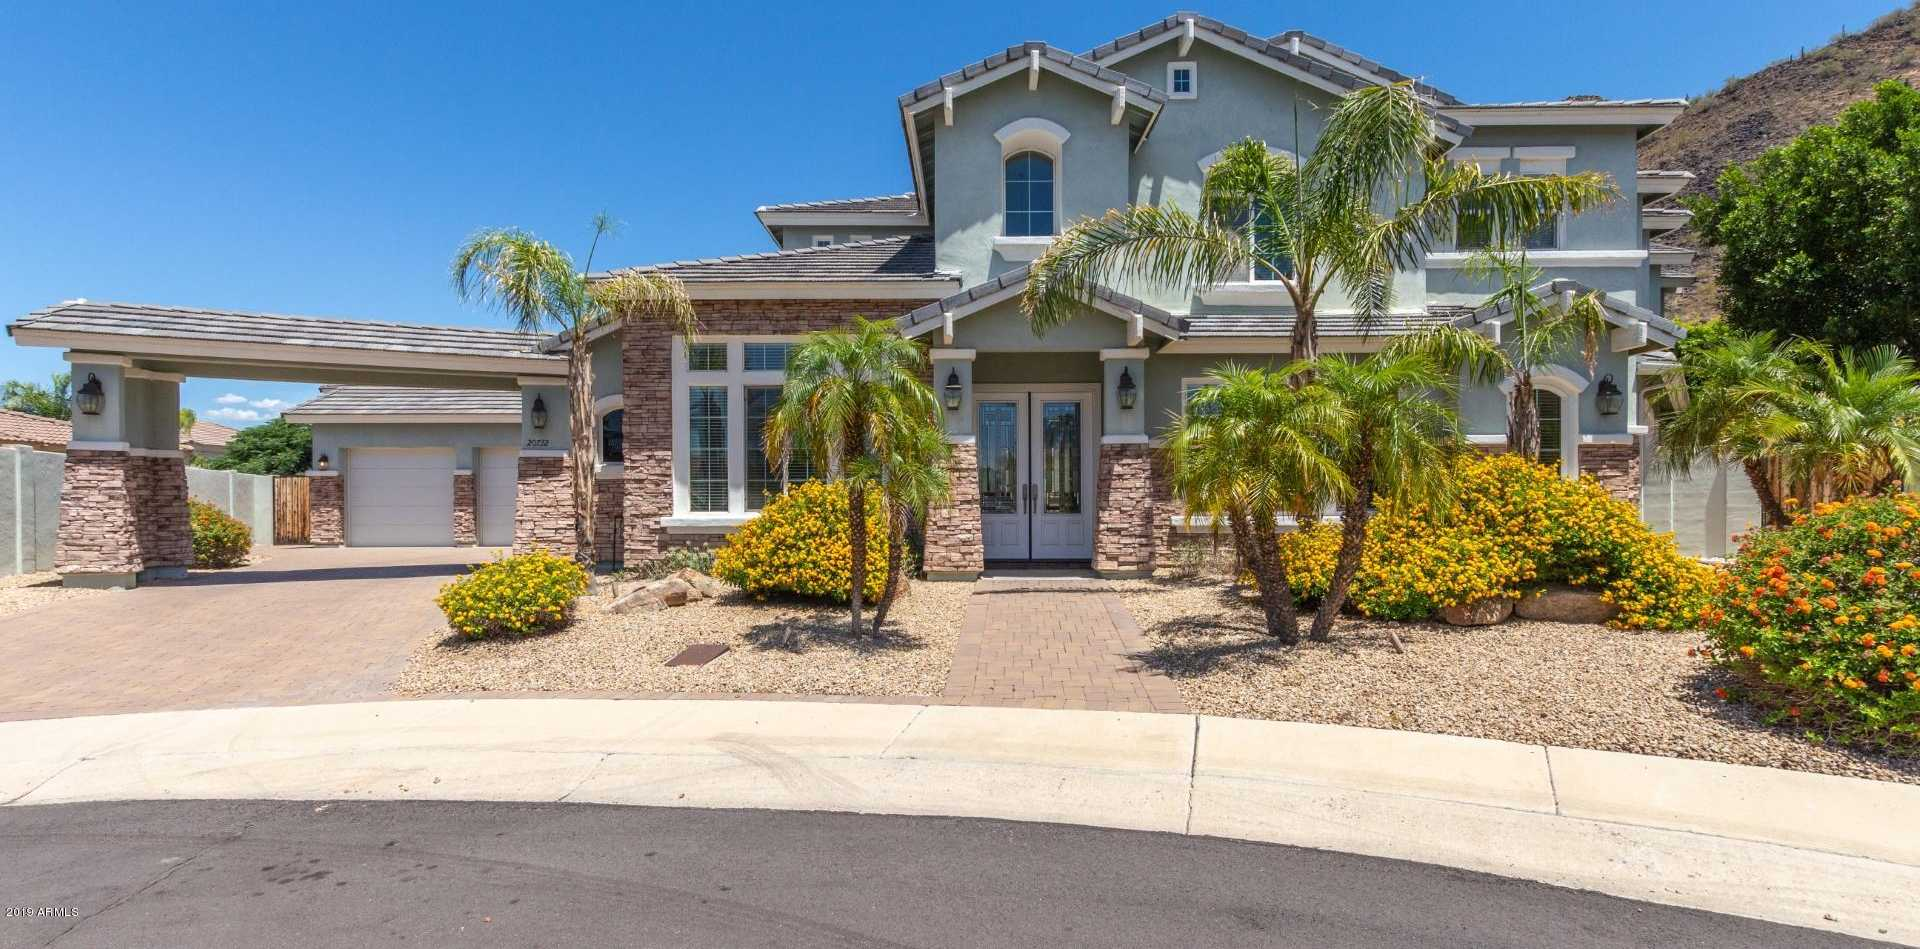 $698,000 - 5Br/4Ba - Home for Sale in Trail's End, Glendale